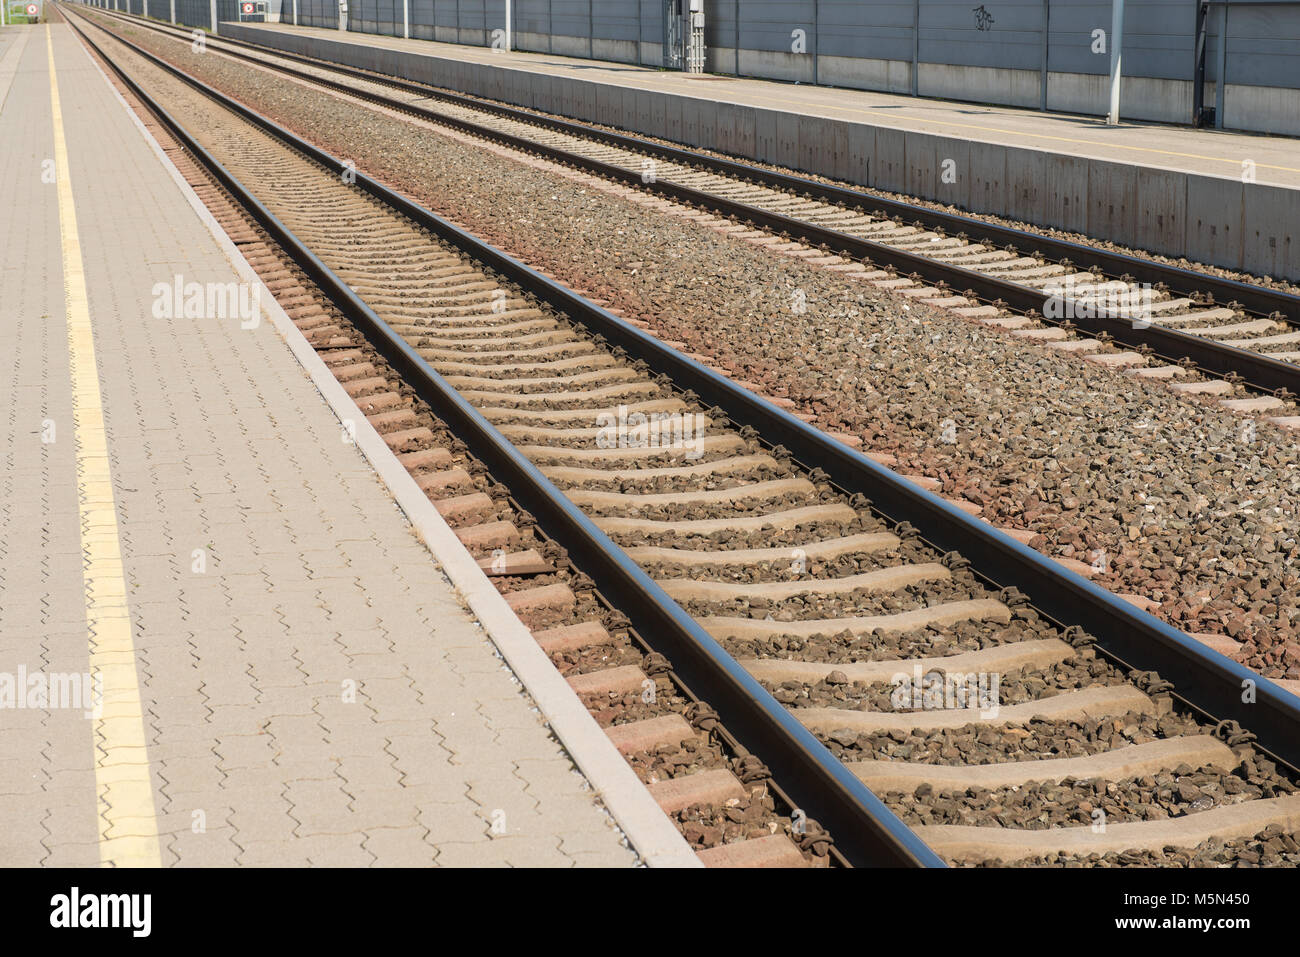 Train tracks and station at Flughafen Graz Feldkirchen with perron - Stock Image